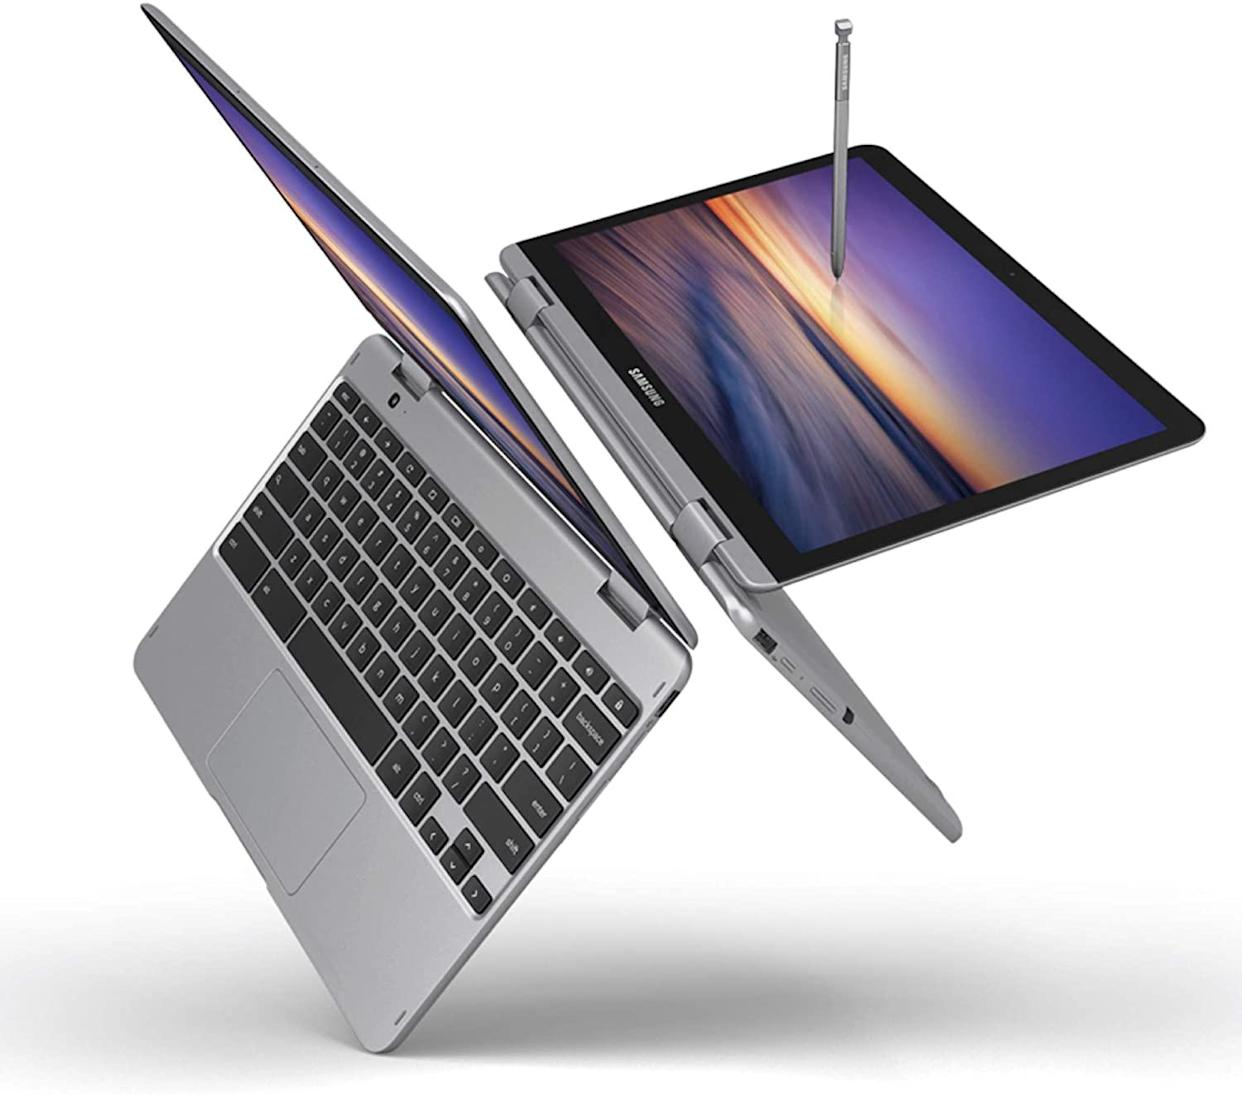 This Samsung Chromebook collapses into a tablet. (Photo: Amazon)